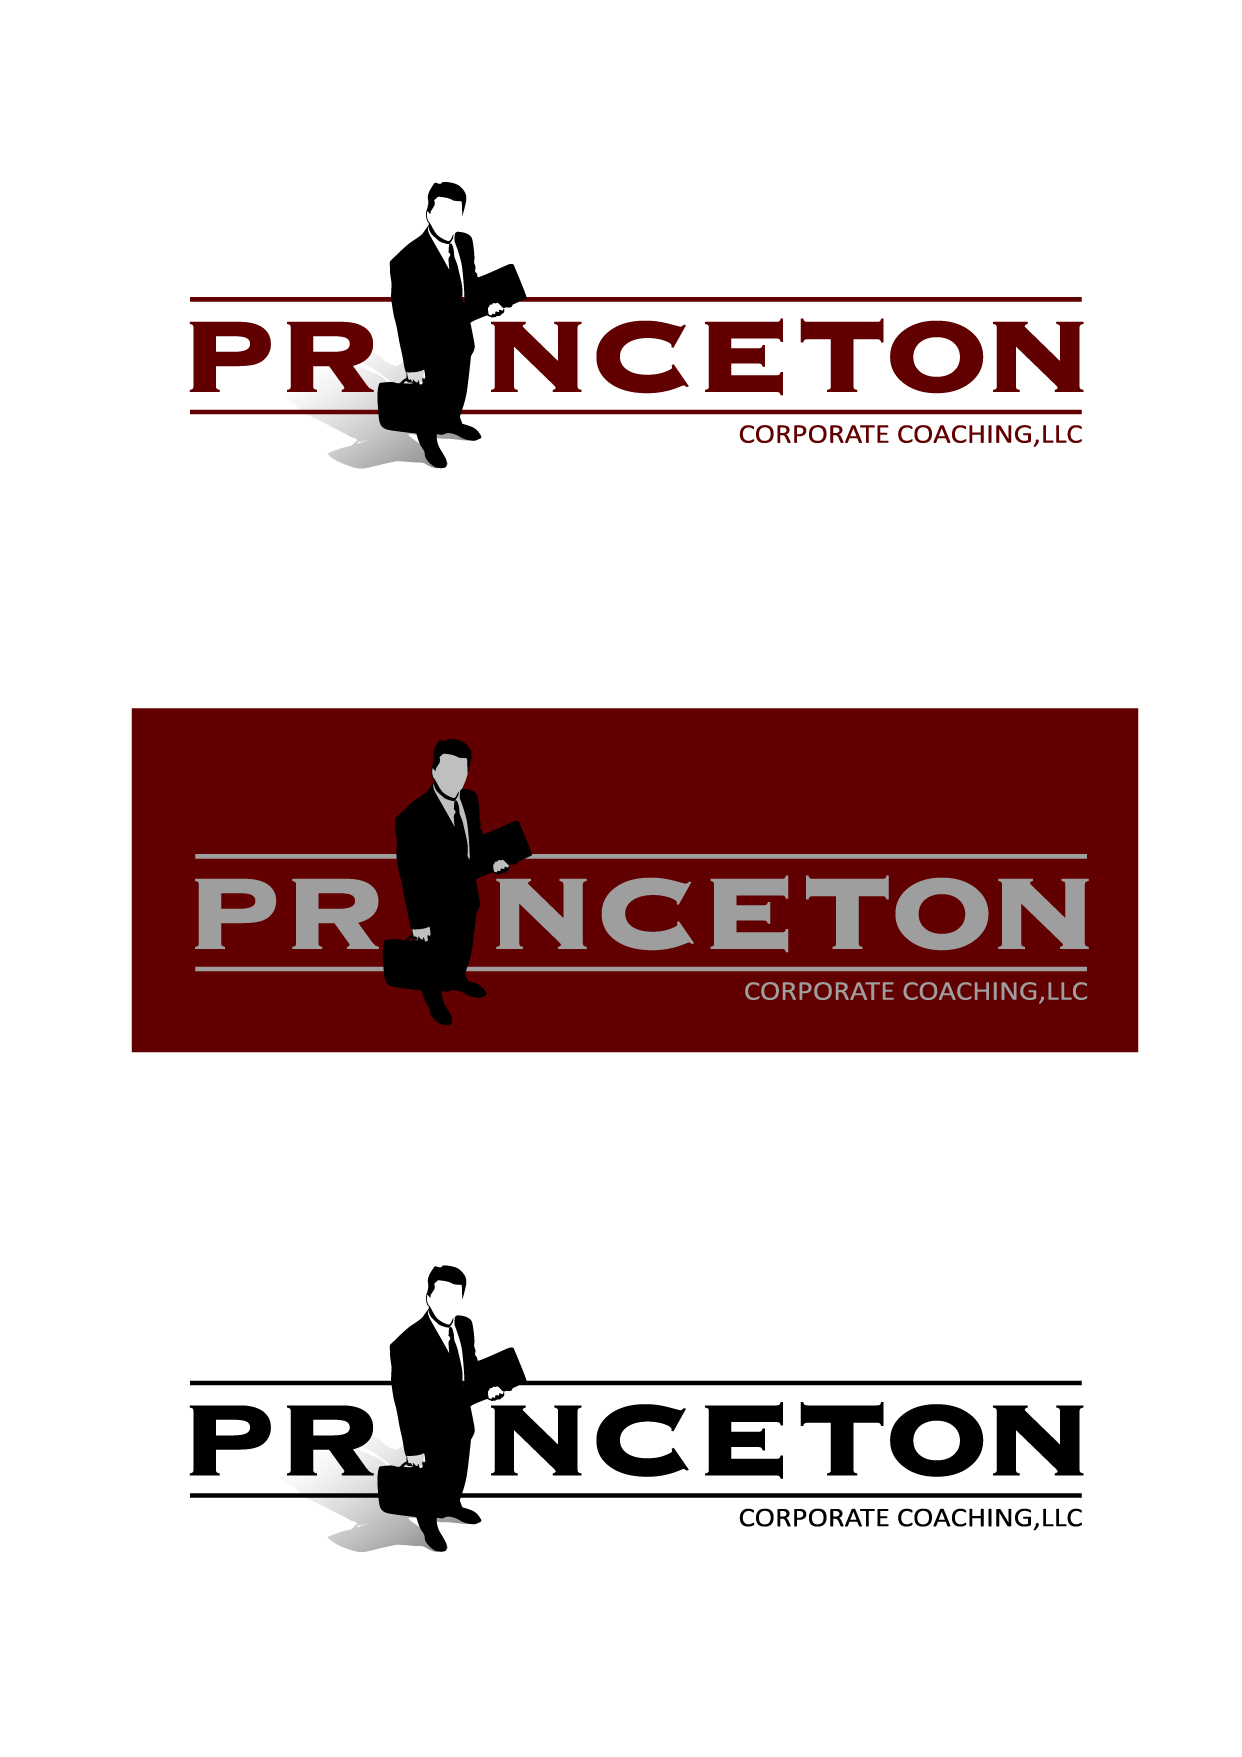 Logo Design by Wilfredo Mendoza - Entry No. 57 in the Logo Design Contest Unique Logo Design Wanted for Princeton Corporate Coaching, LLC.